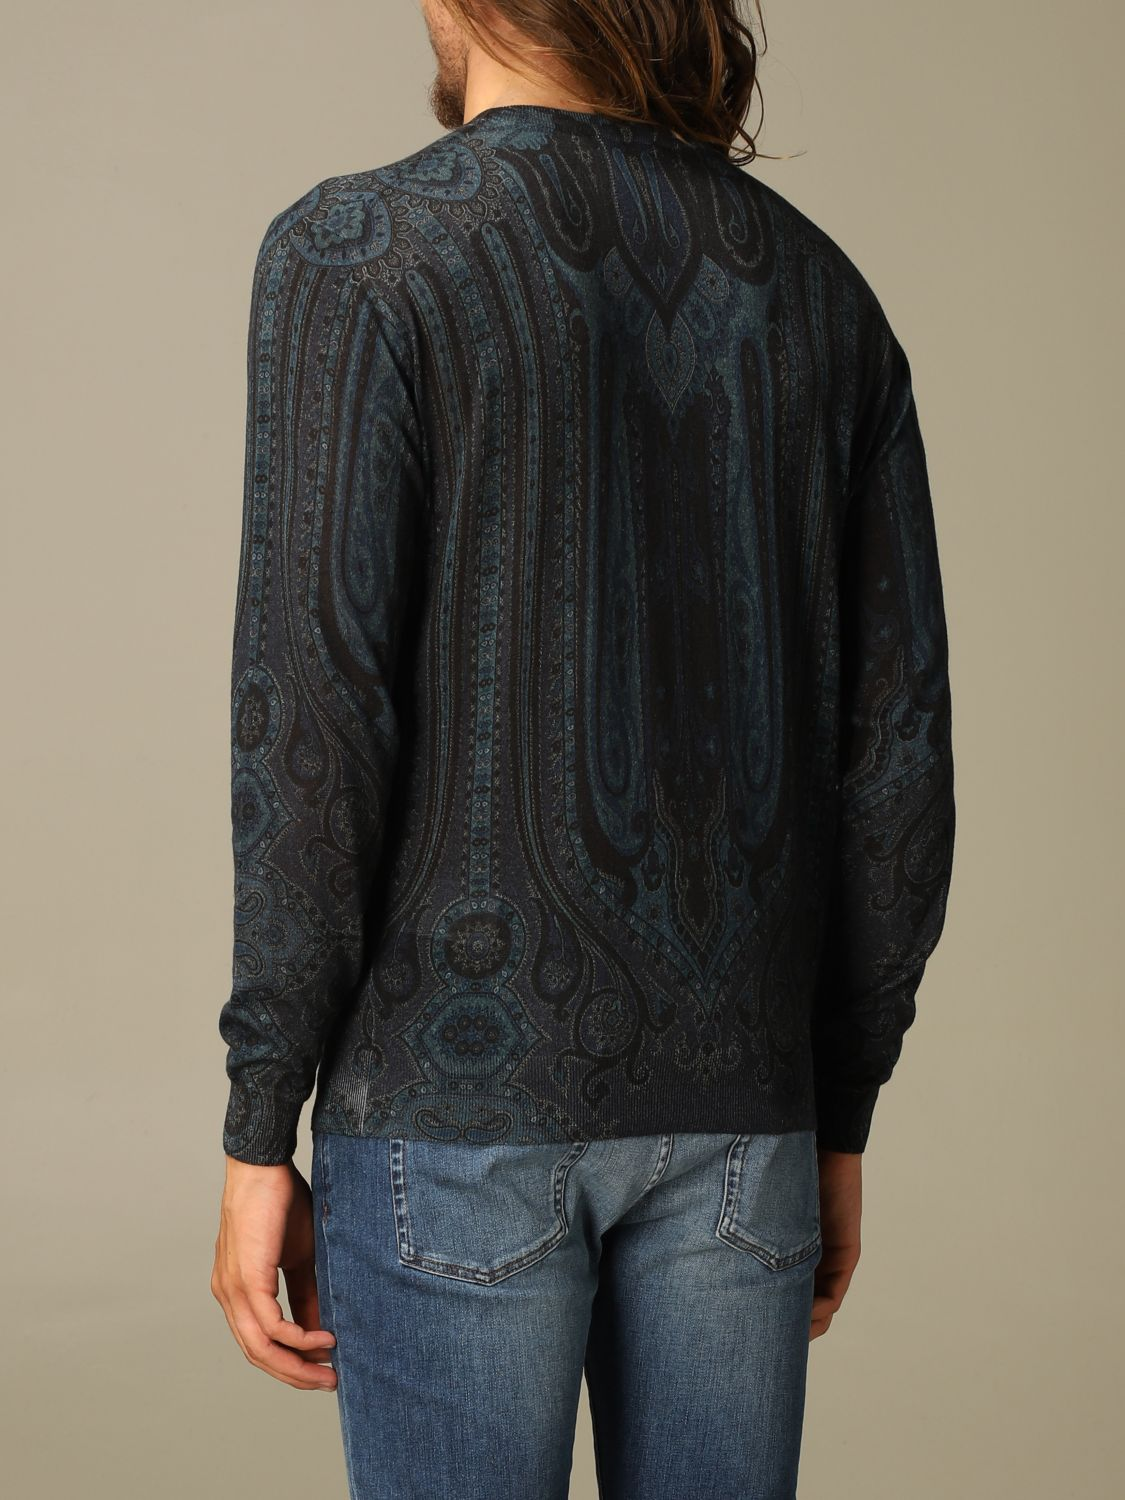 Sweater Etro: Etro sweater in silk and paisley chasmere blue 3